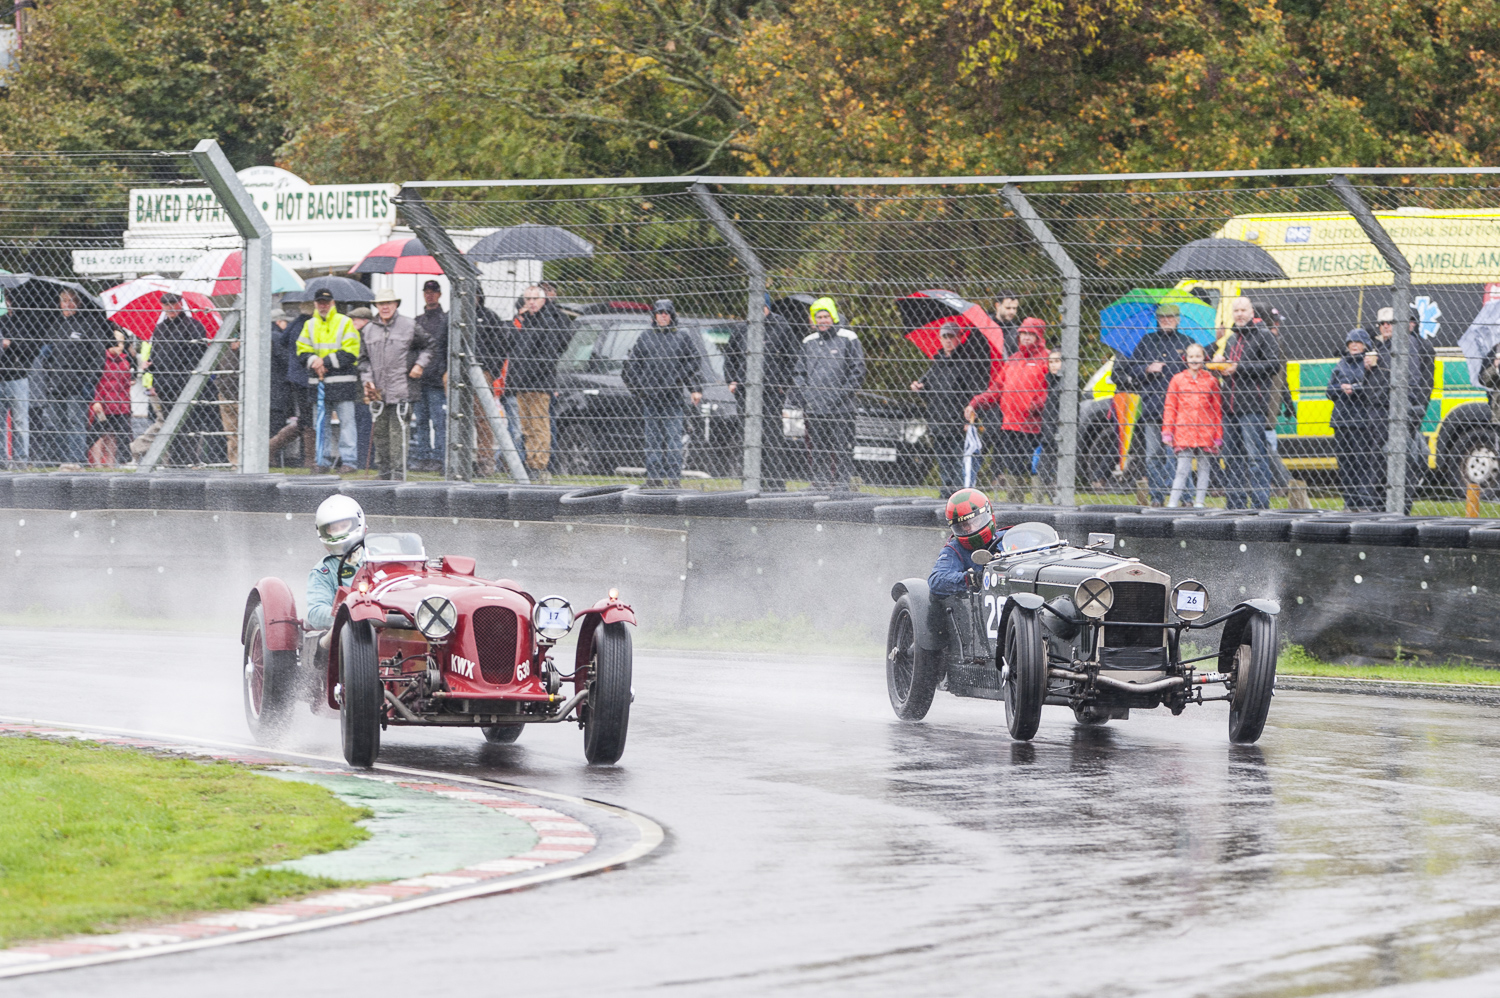 Gillies in the Aston takes the inside line from Waterfield in the Frazer Nash, taking 1st and 2nd places respectively:  Peter McFadyen